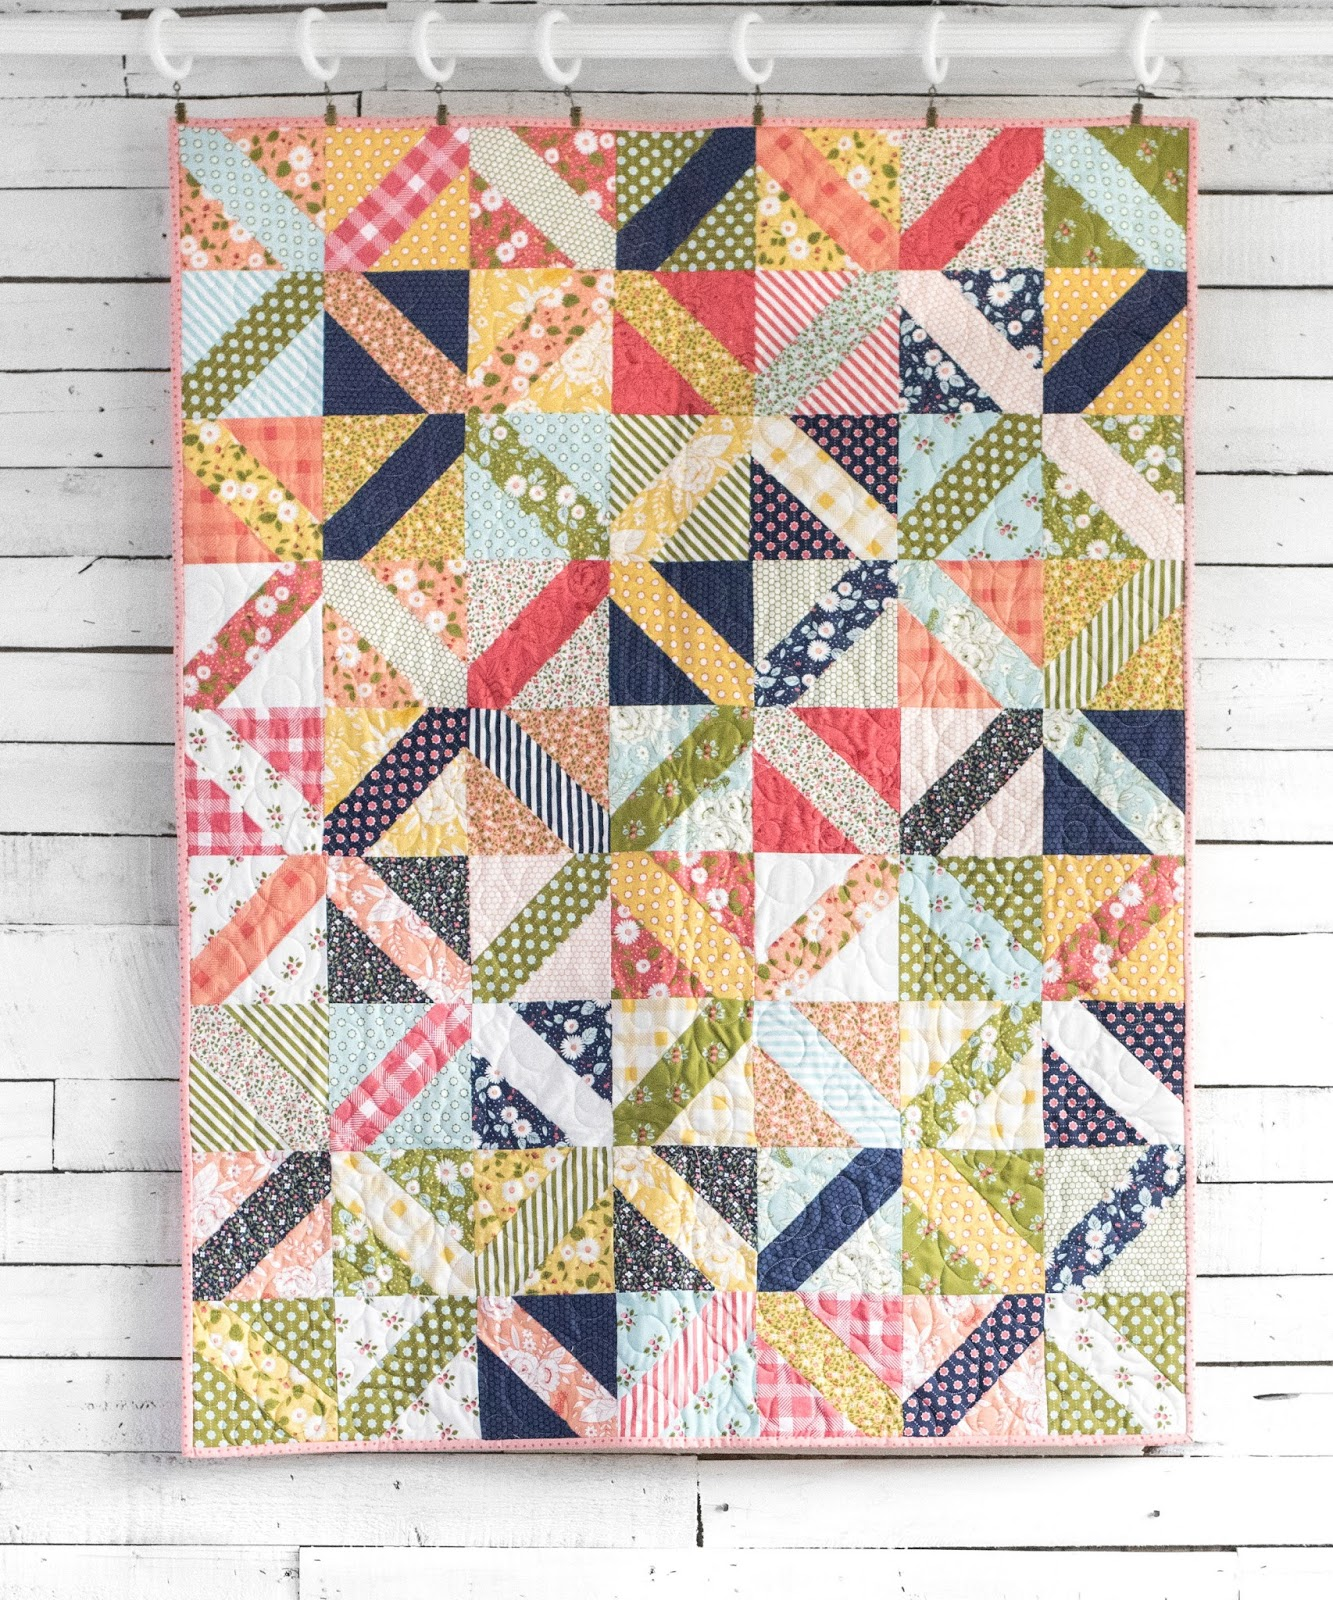 Tea Rose Home: Craftsy Class by Amy of Diary of a Quilter and ... : crosshatch quilting - Adamdwight.com